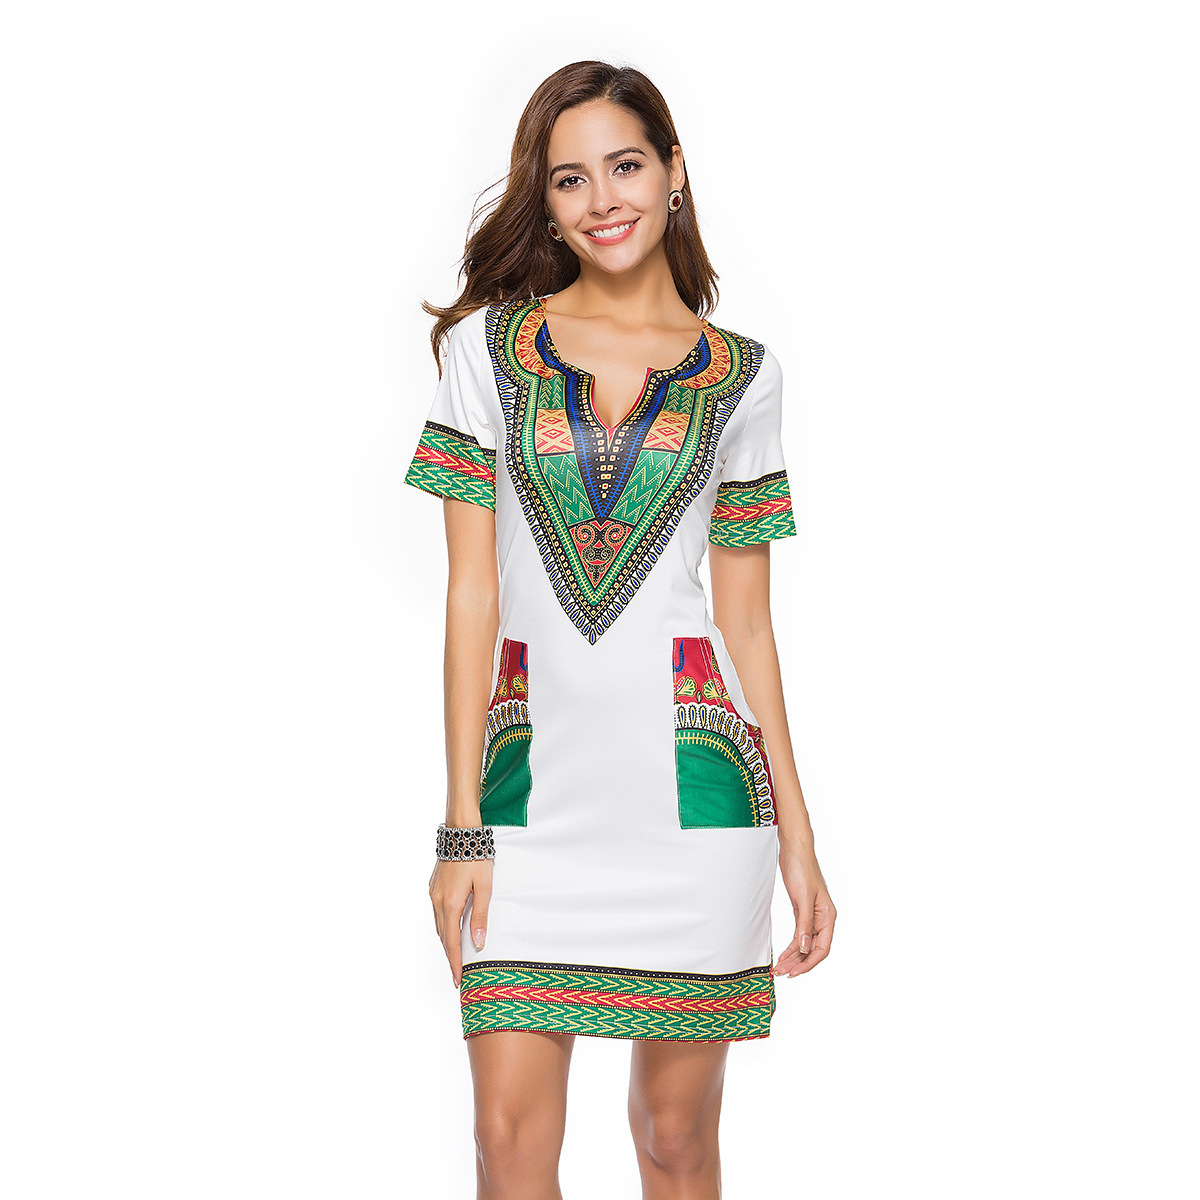 f9ddba9bd78f Sosaeg 2018 Spring And long casual Summer beach dresses Nation Wind  Printing Dress women Girls Women s clothes sexy fashion -in Dresses from  Women s ...